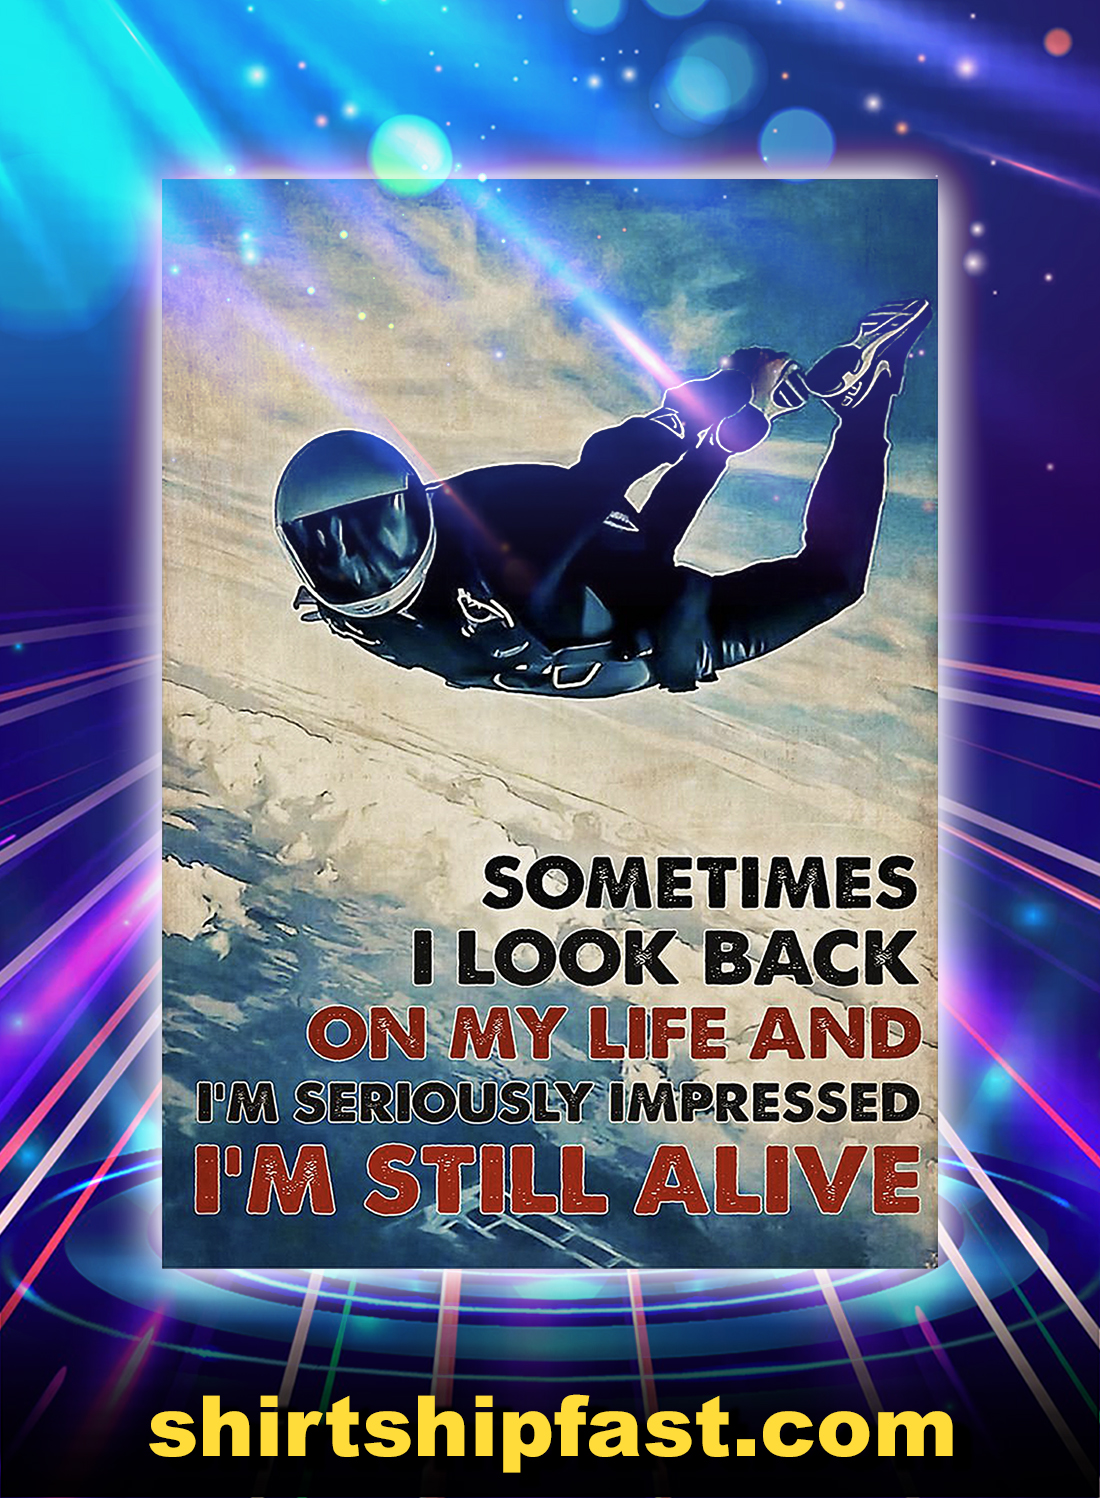 Skydiver sometimes i look back on my life poster - A4